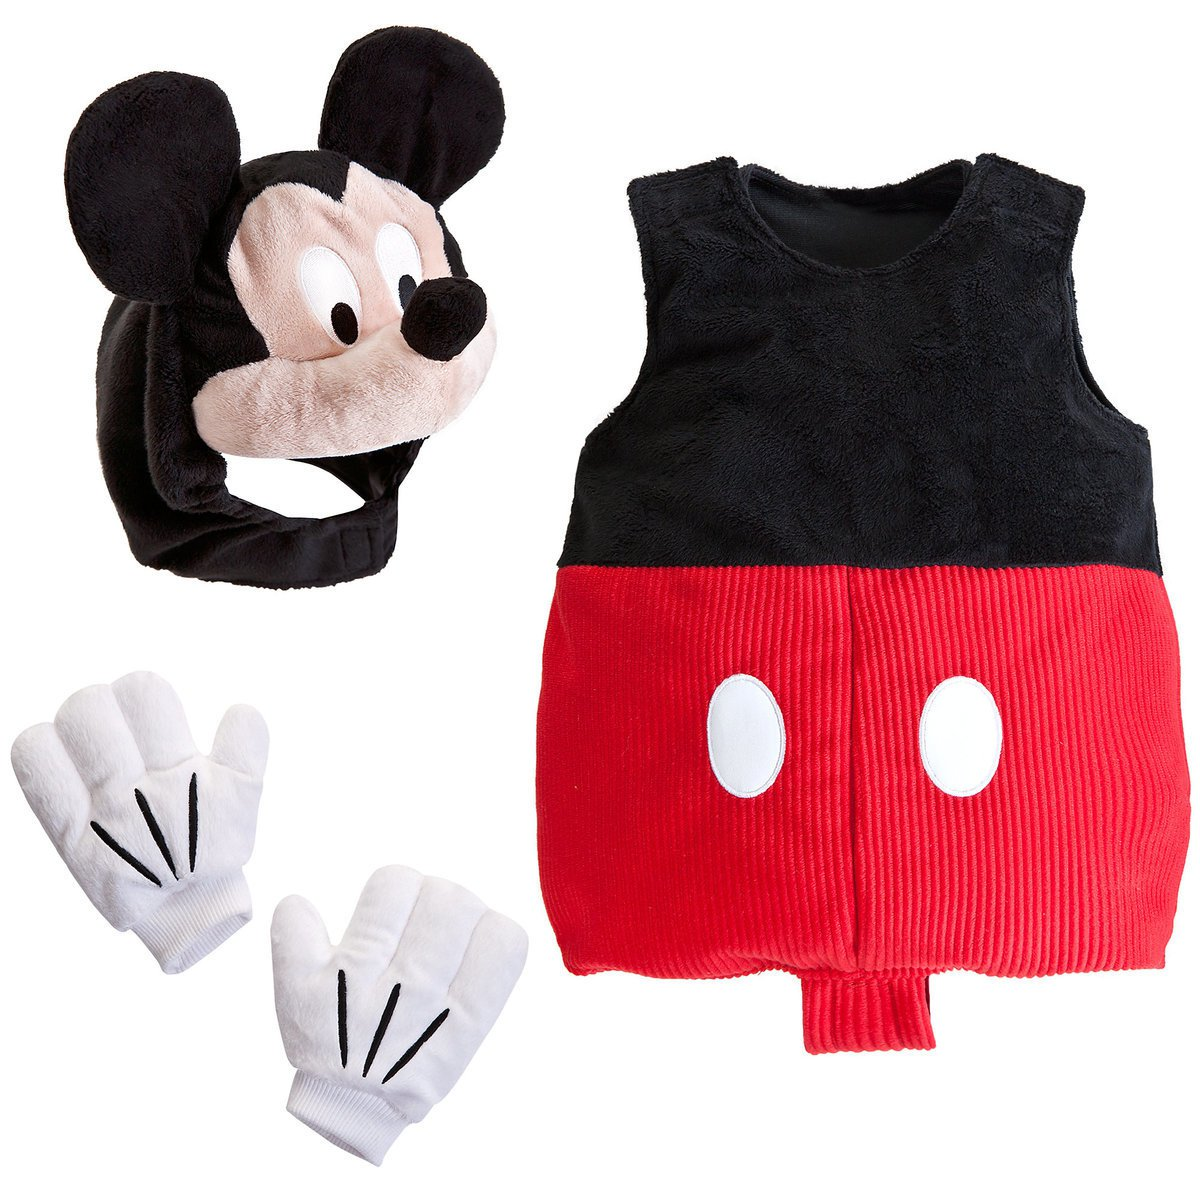 Disney Store Baby Costume Hat Mickey Mouse Size 3-6 Months New